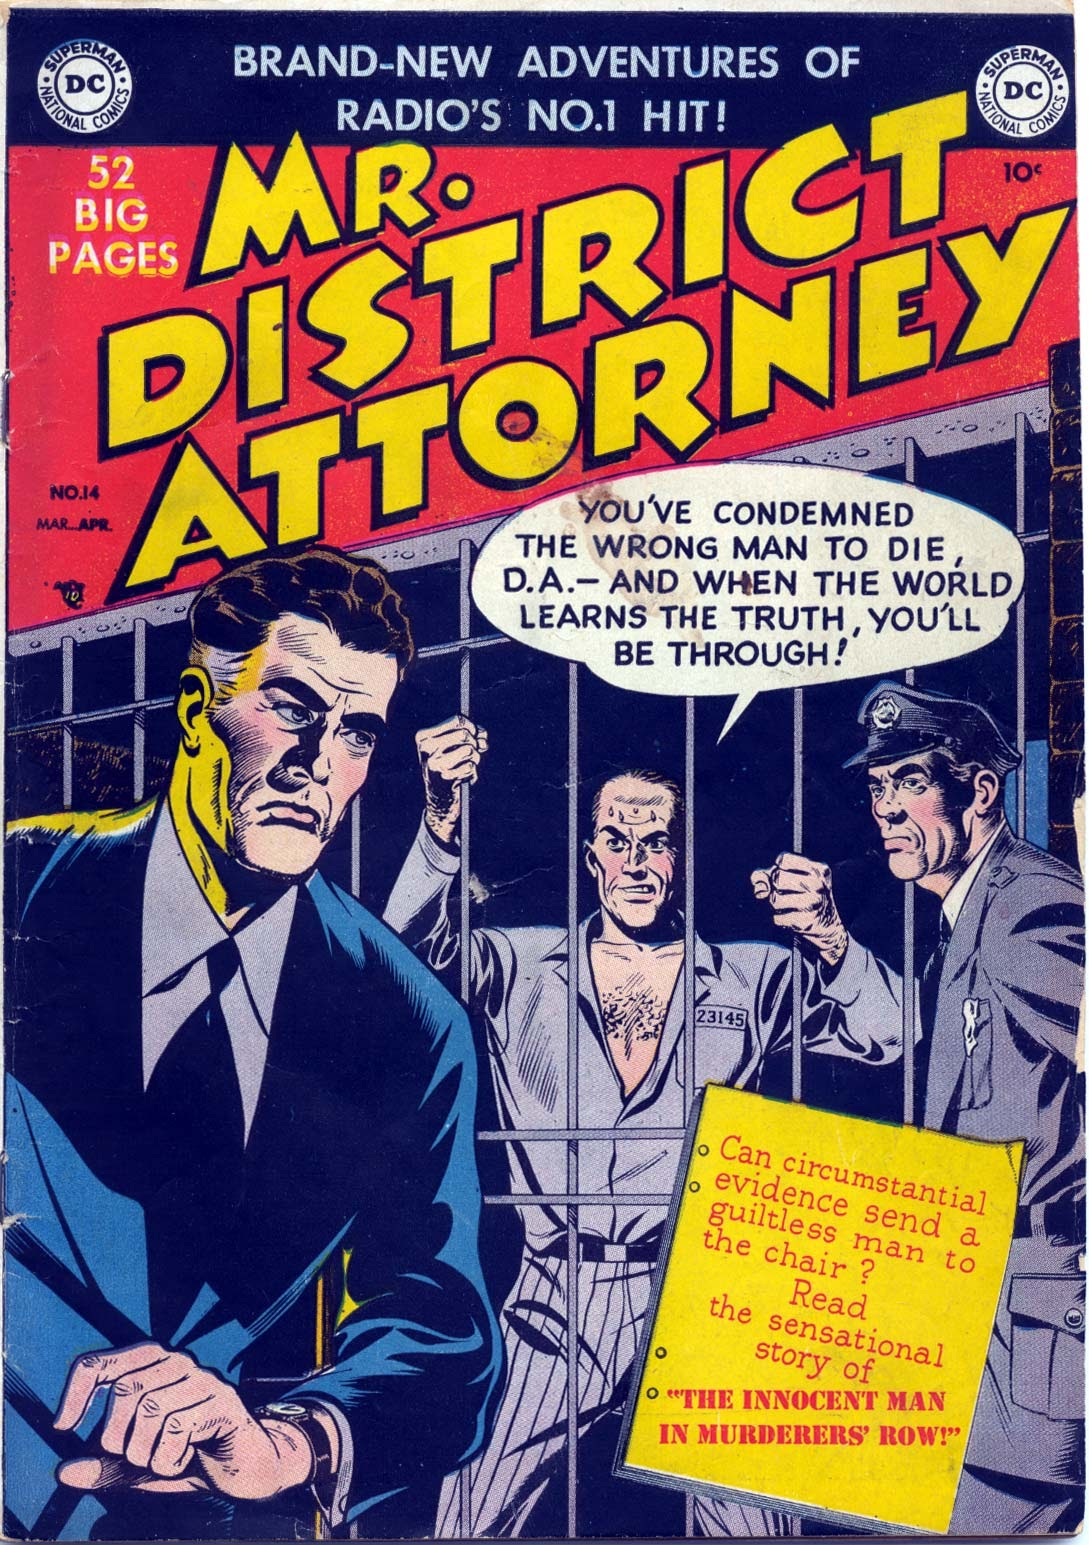 Mr. District Attorney issue 14 - Page 1